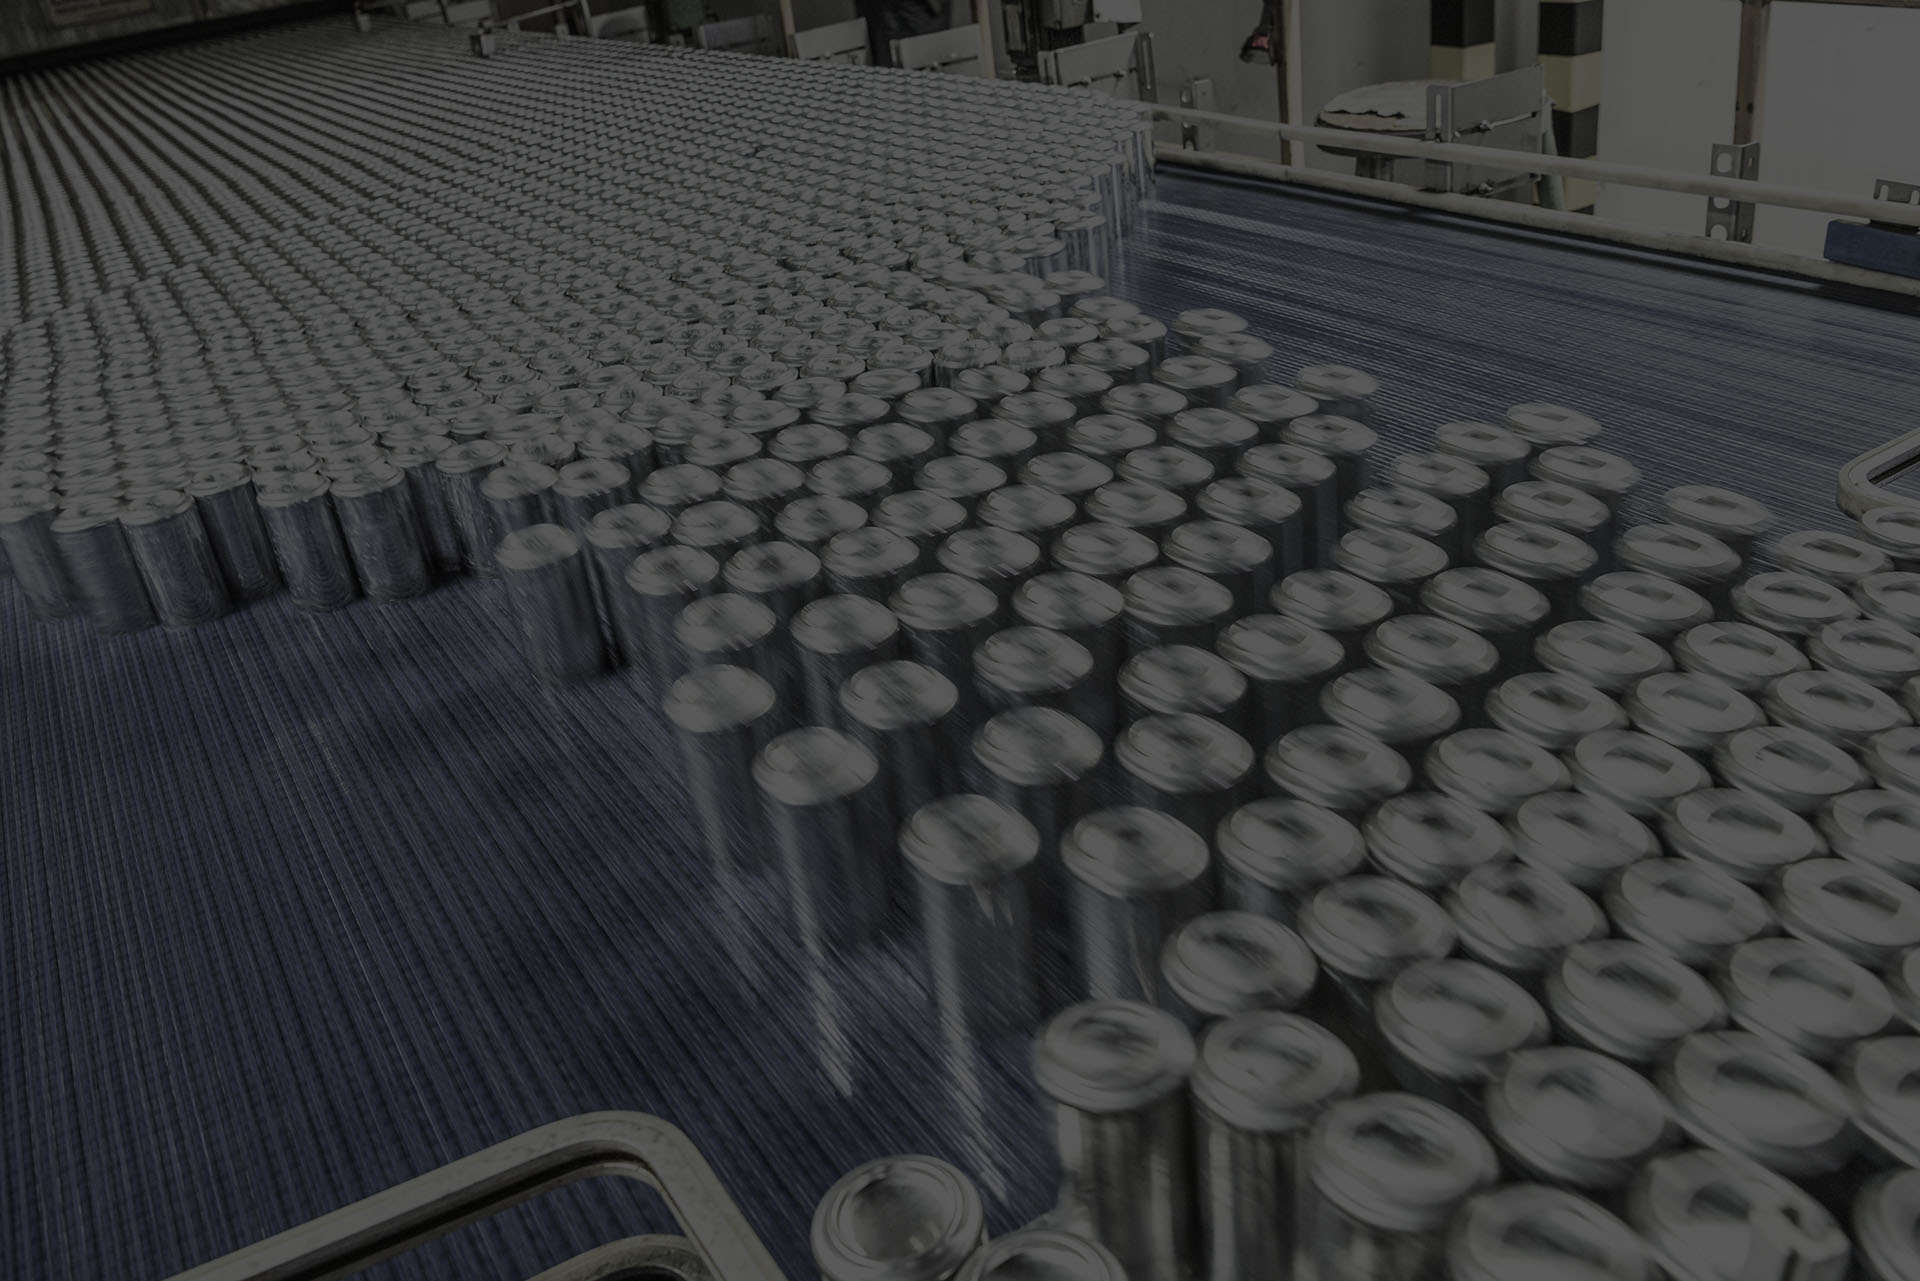 Aluminium cans moving along conveyor belt in processing plant